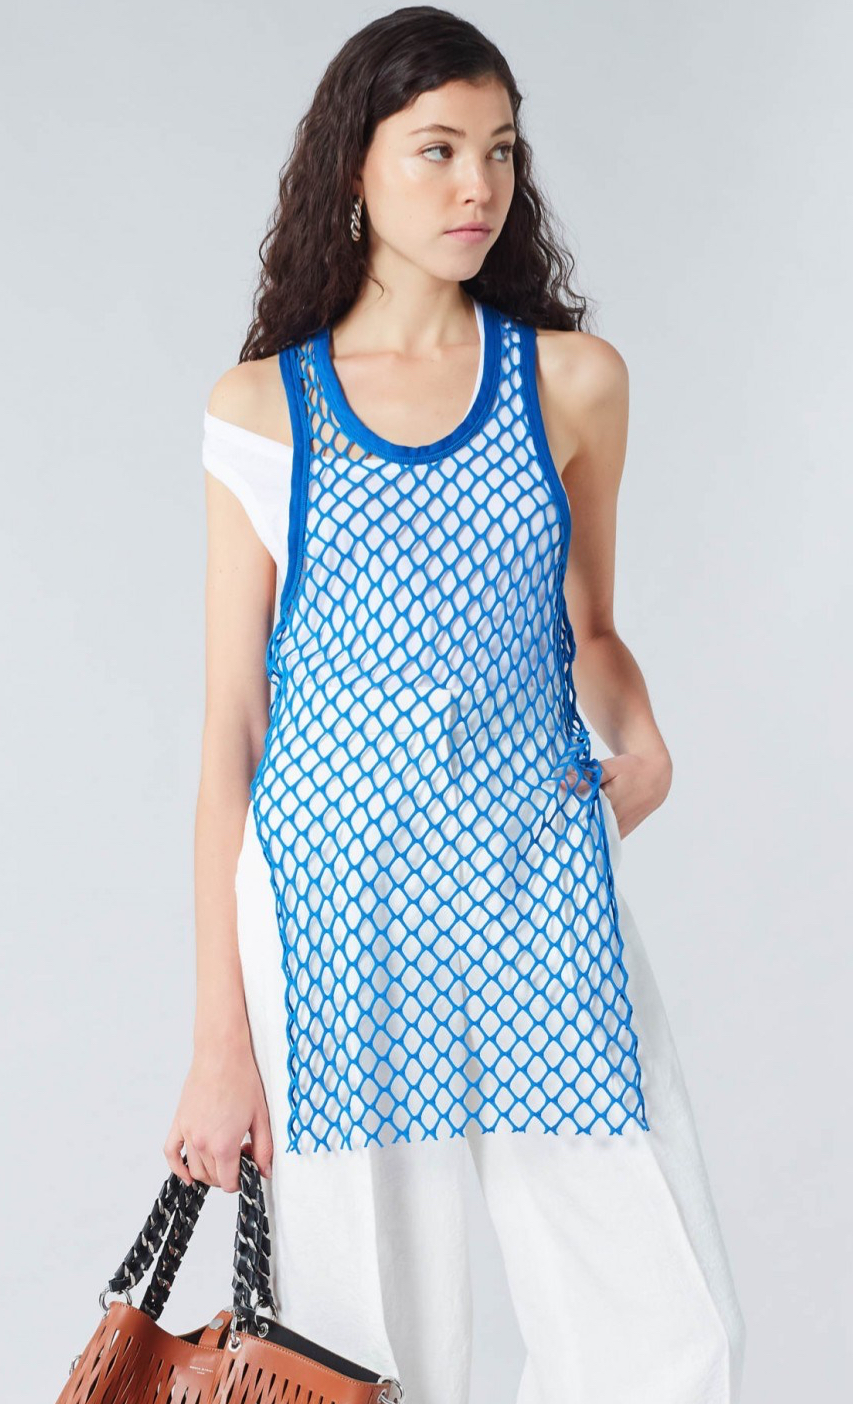 Model wearing Sonia Rykiel Blue, openwork mesh lace tank top over white vest and white, white legged trousers. Summer 2019.